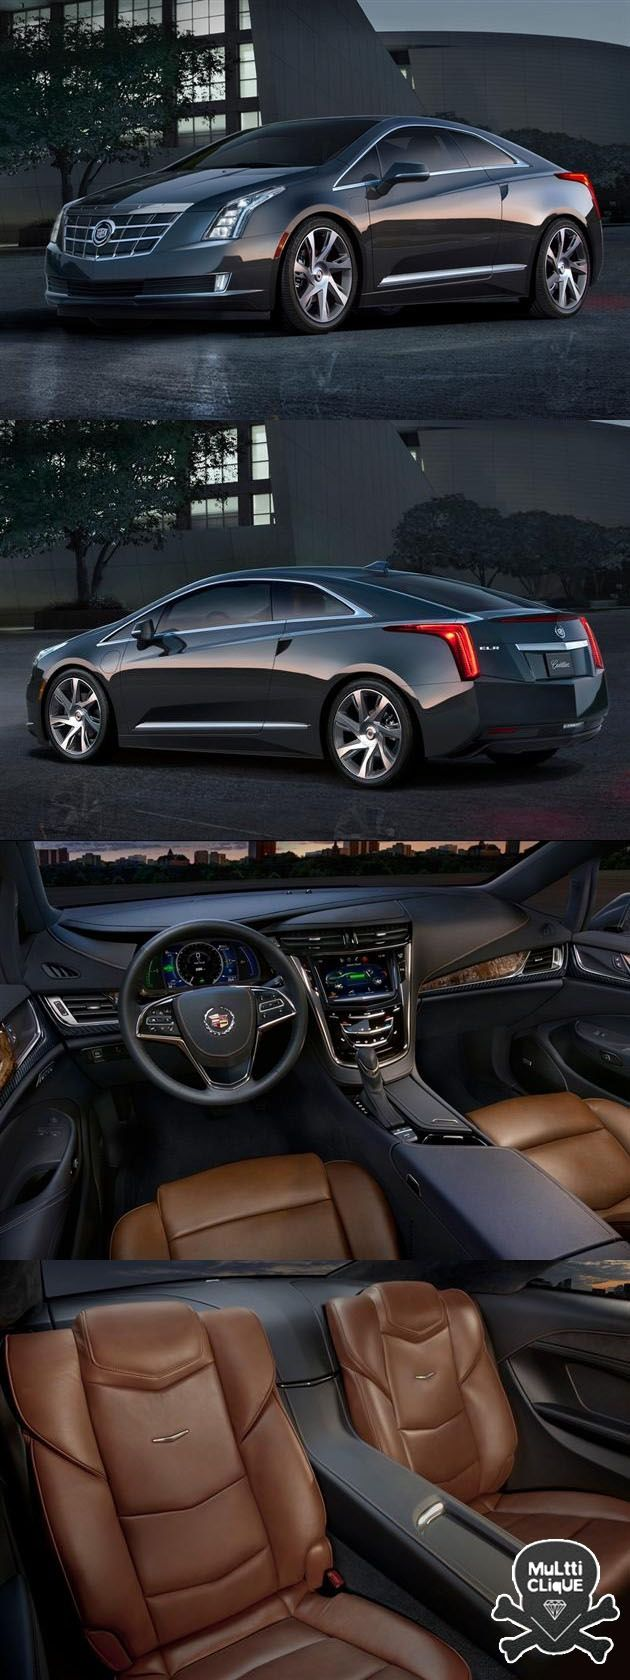 I would really prefer a 4-Door Cadillac 2014 but you know what?....beggars can't be choosy! #Cadillac #LOVE